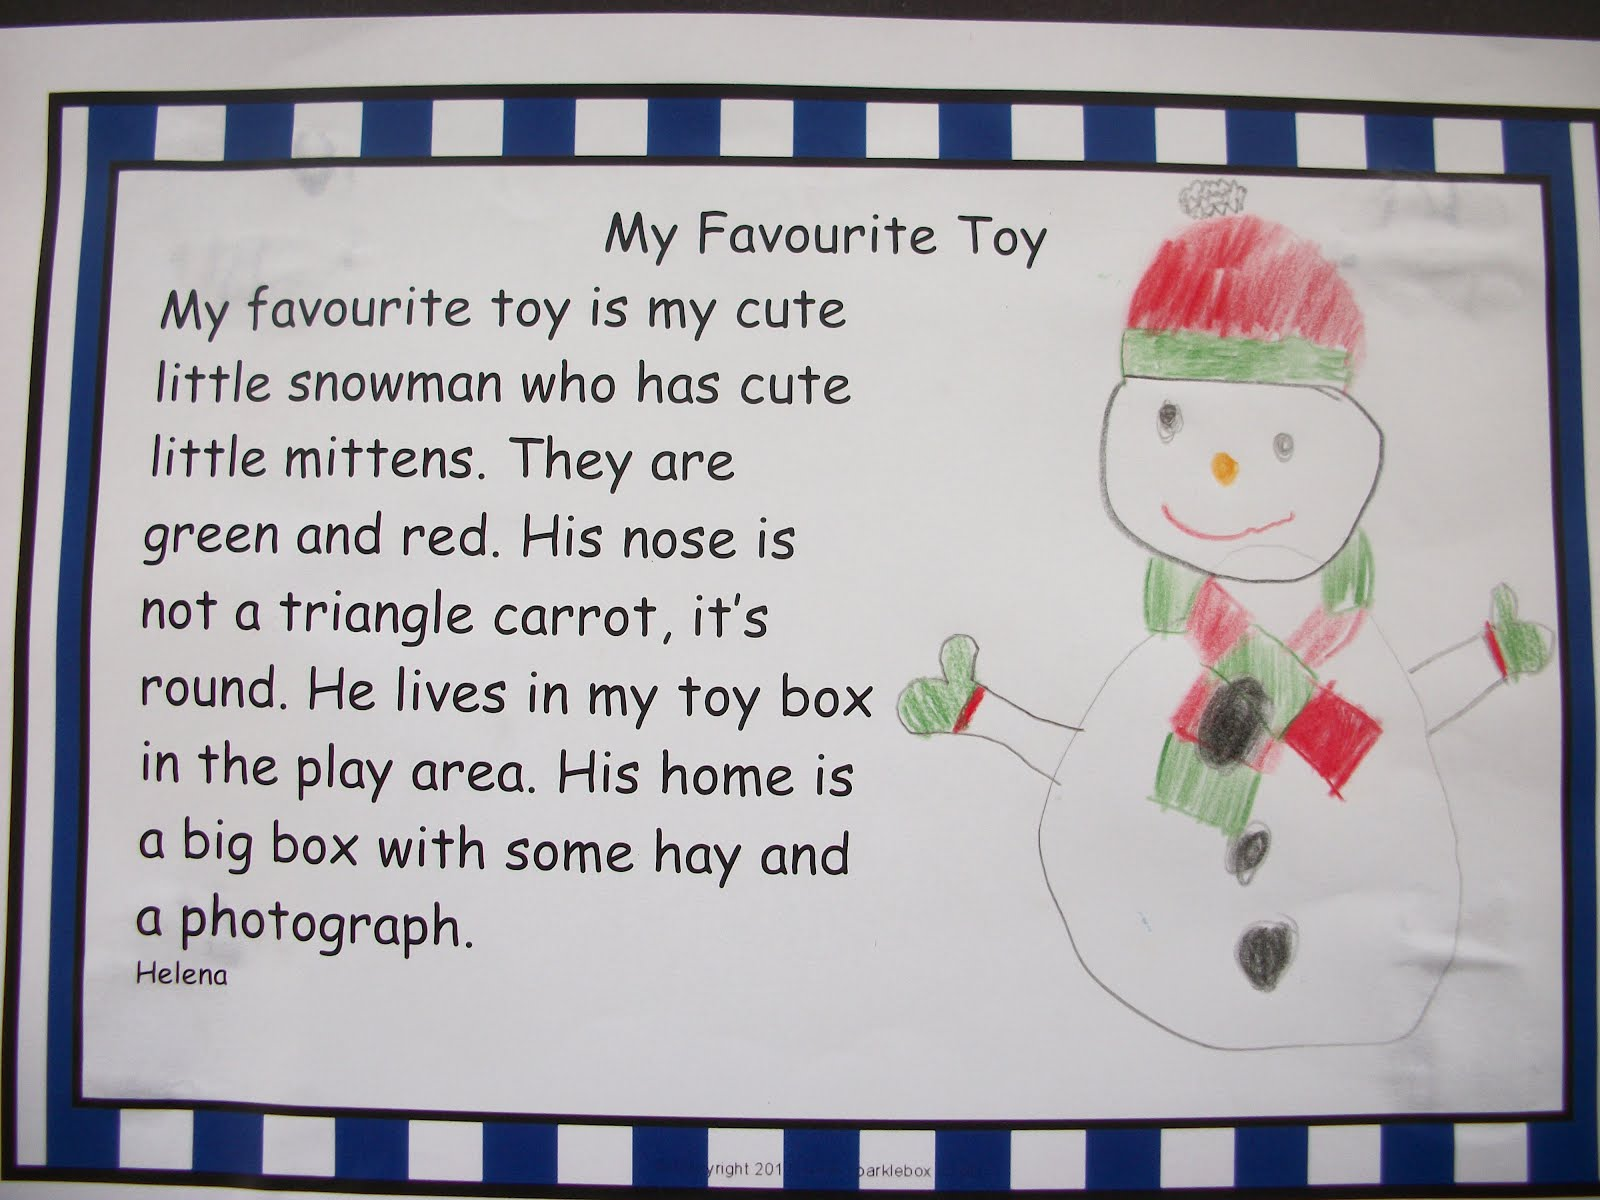 My favourite toy train essay